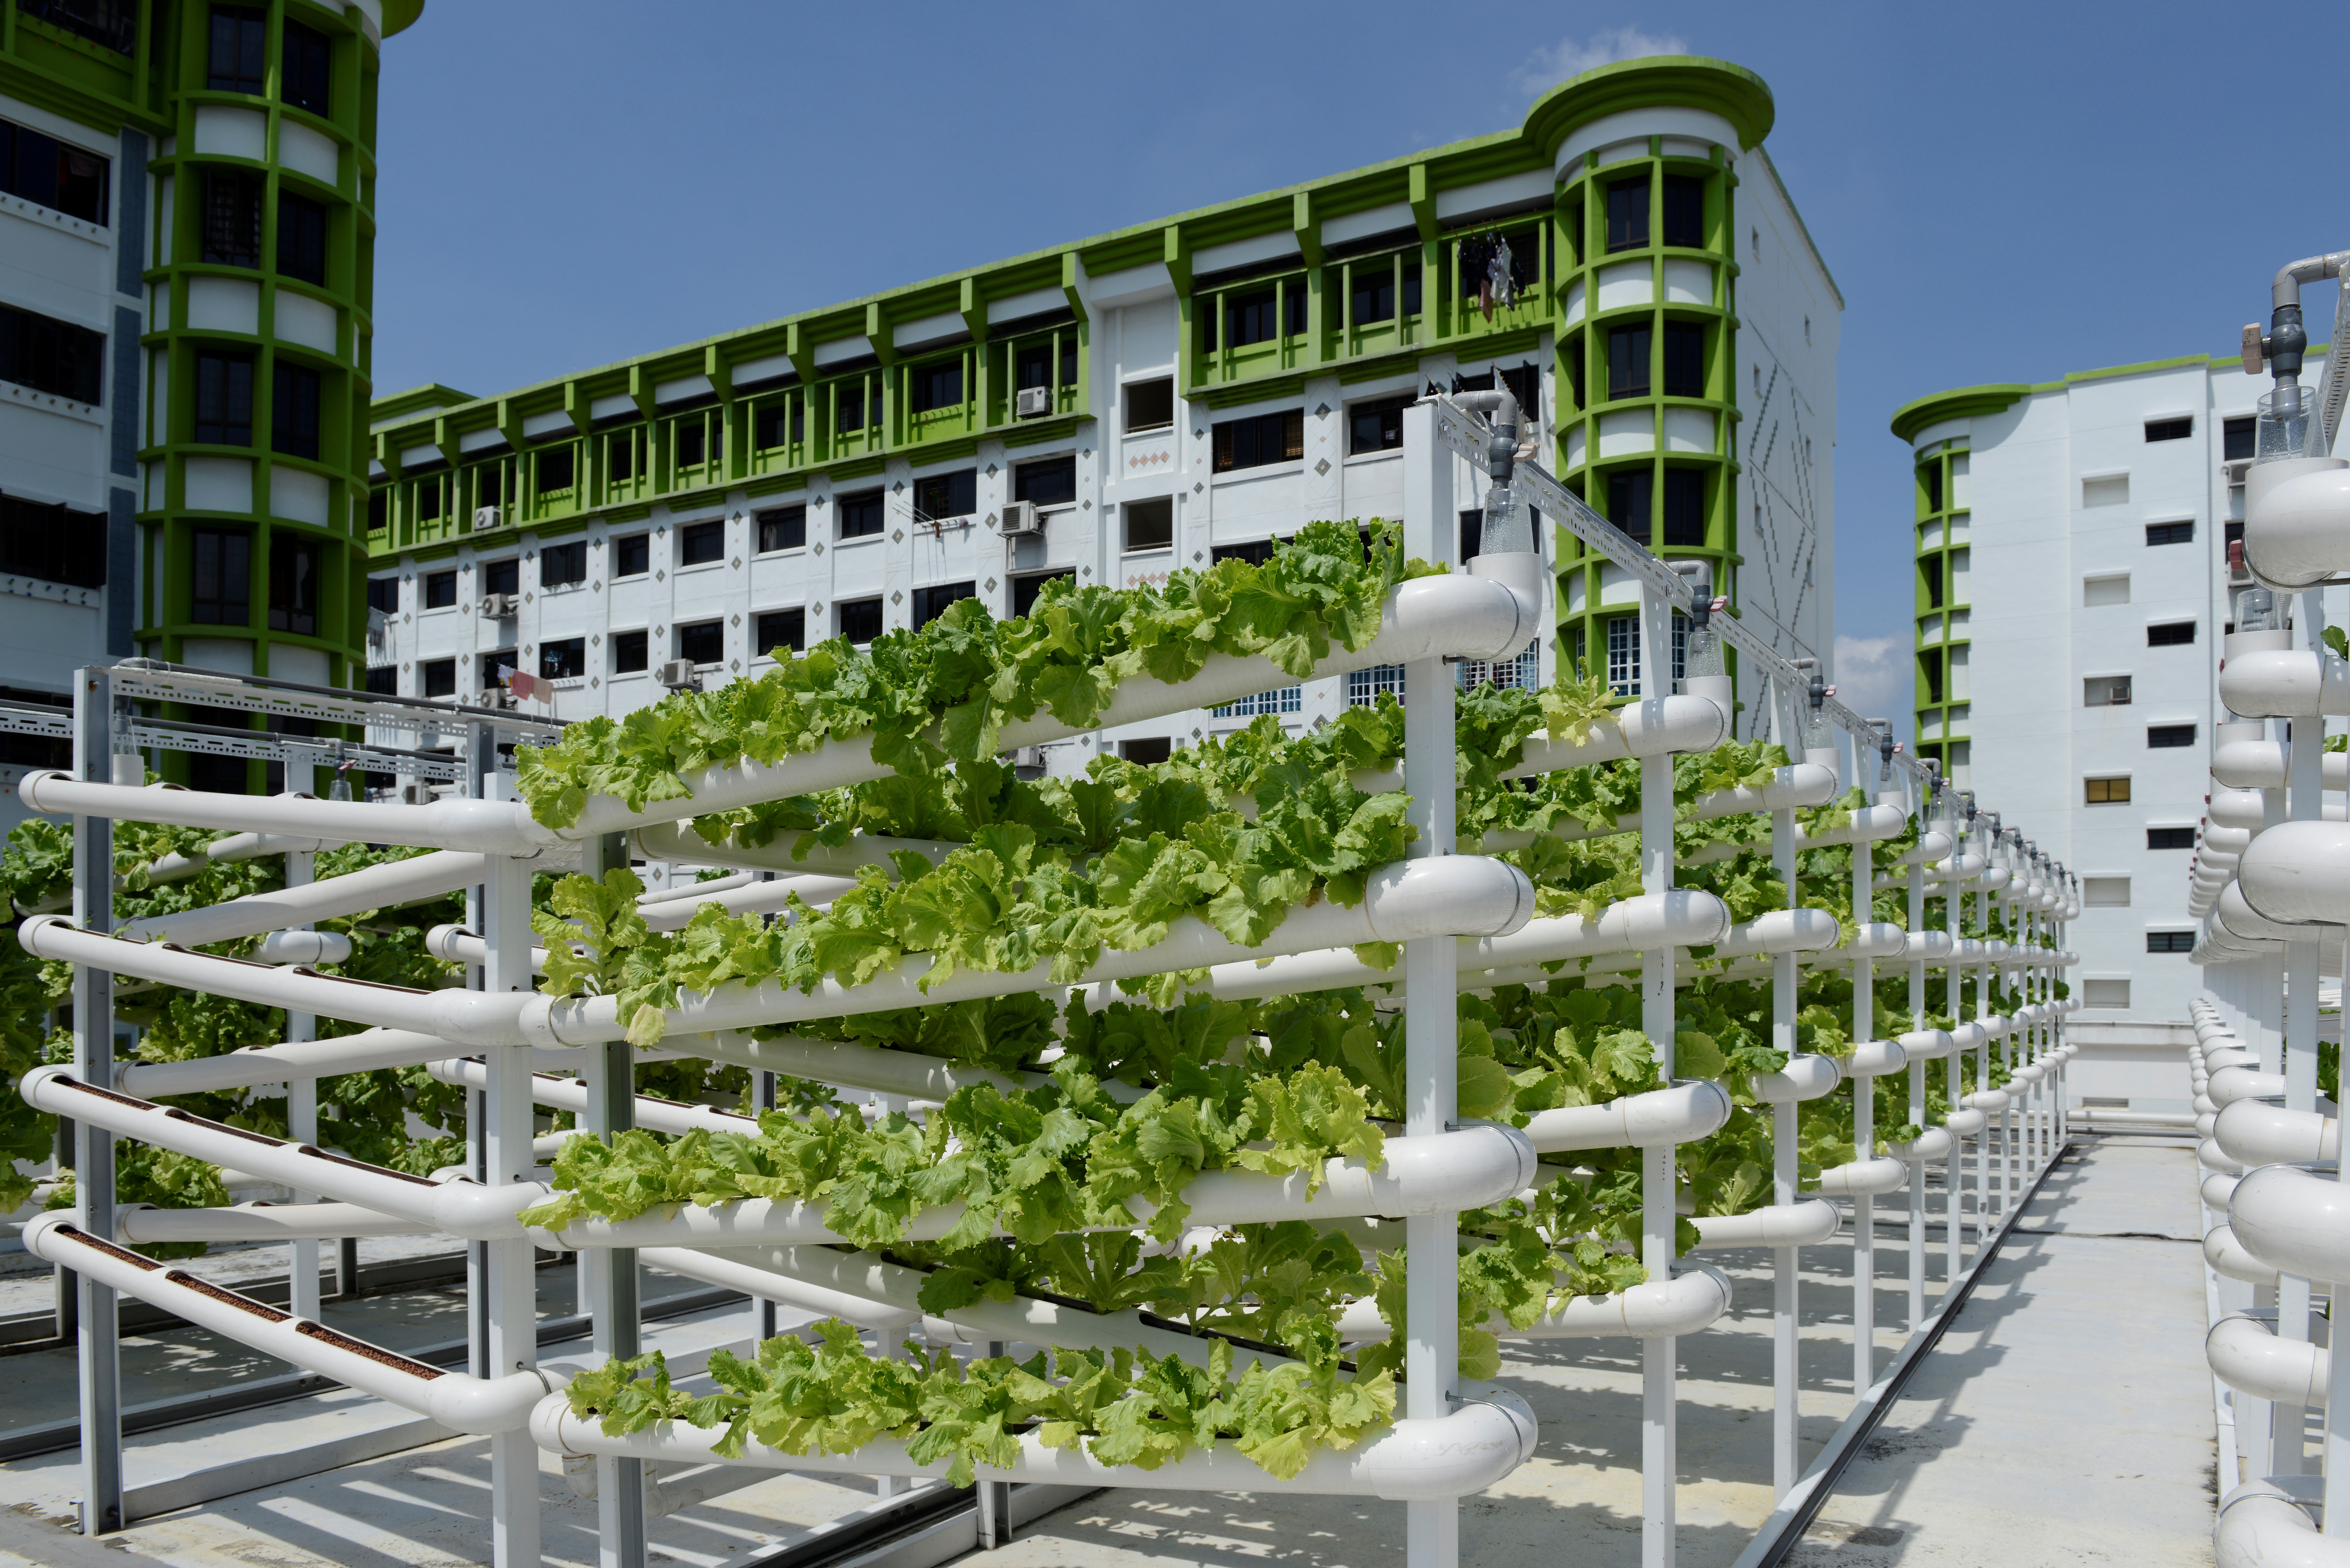 Organic vegetables are seen on growing towers that are primarily made out of polyvinyl chloride (PVC) pipes at Citiponics' urban farm on the rooftop of a multi-storey carpark in a public housing estate in western Singapore April 17, 2018. Picture taken April 17, 2018.